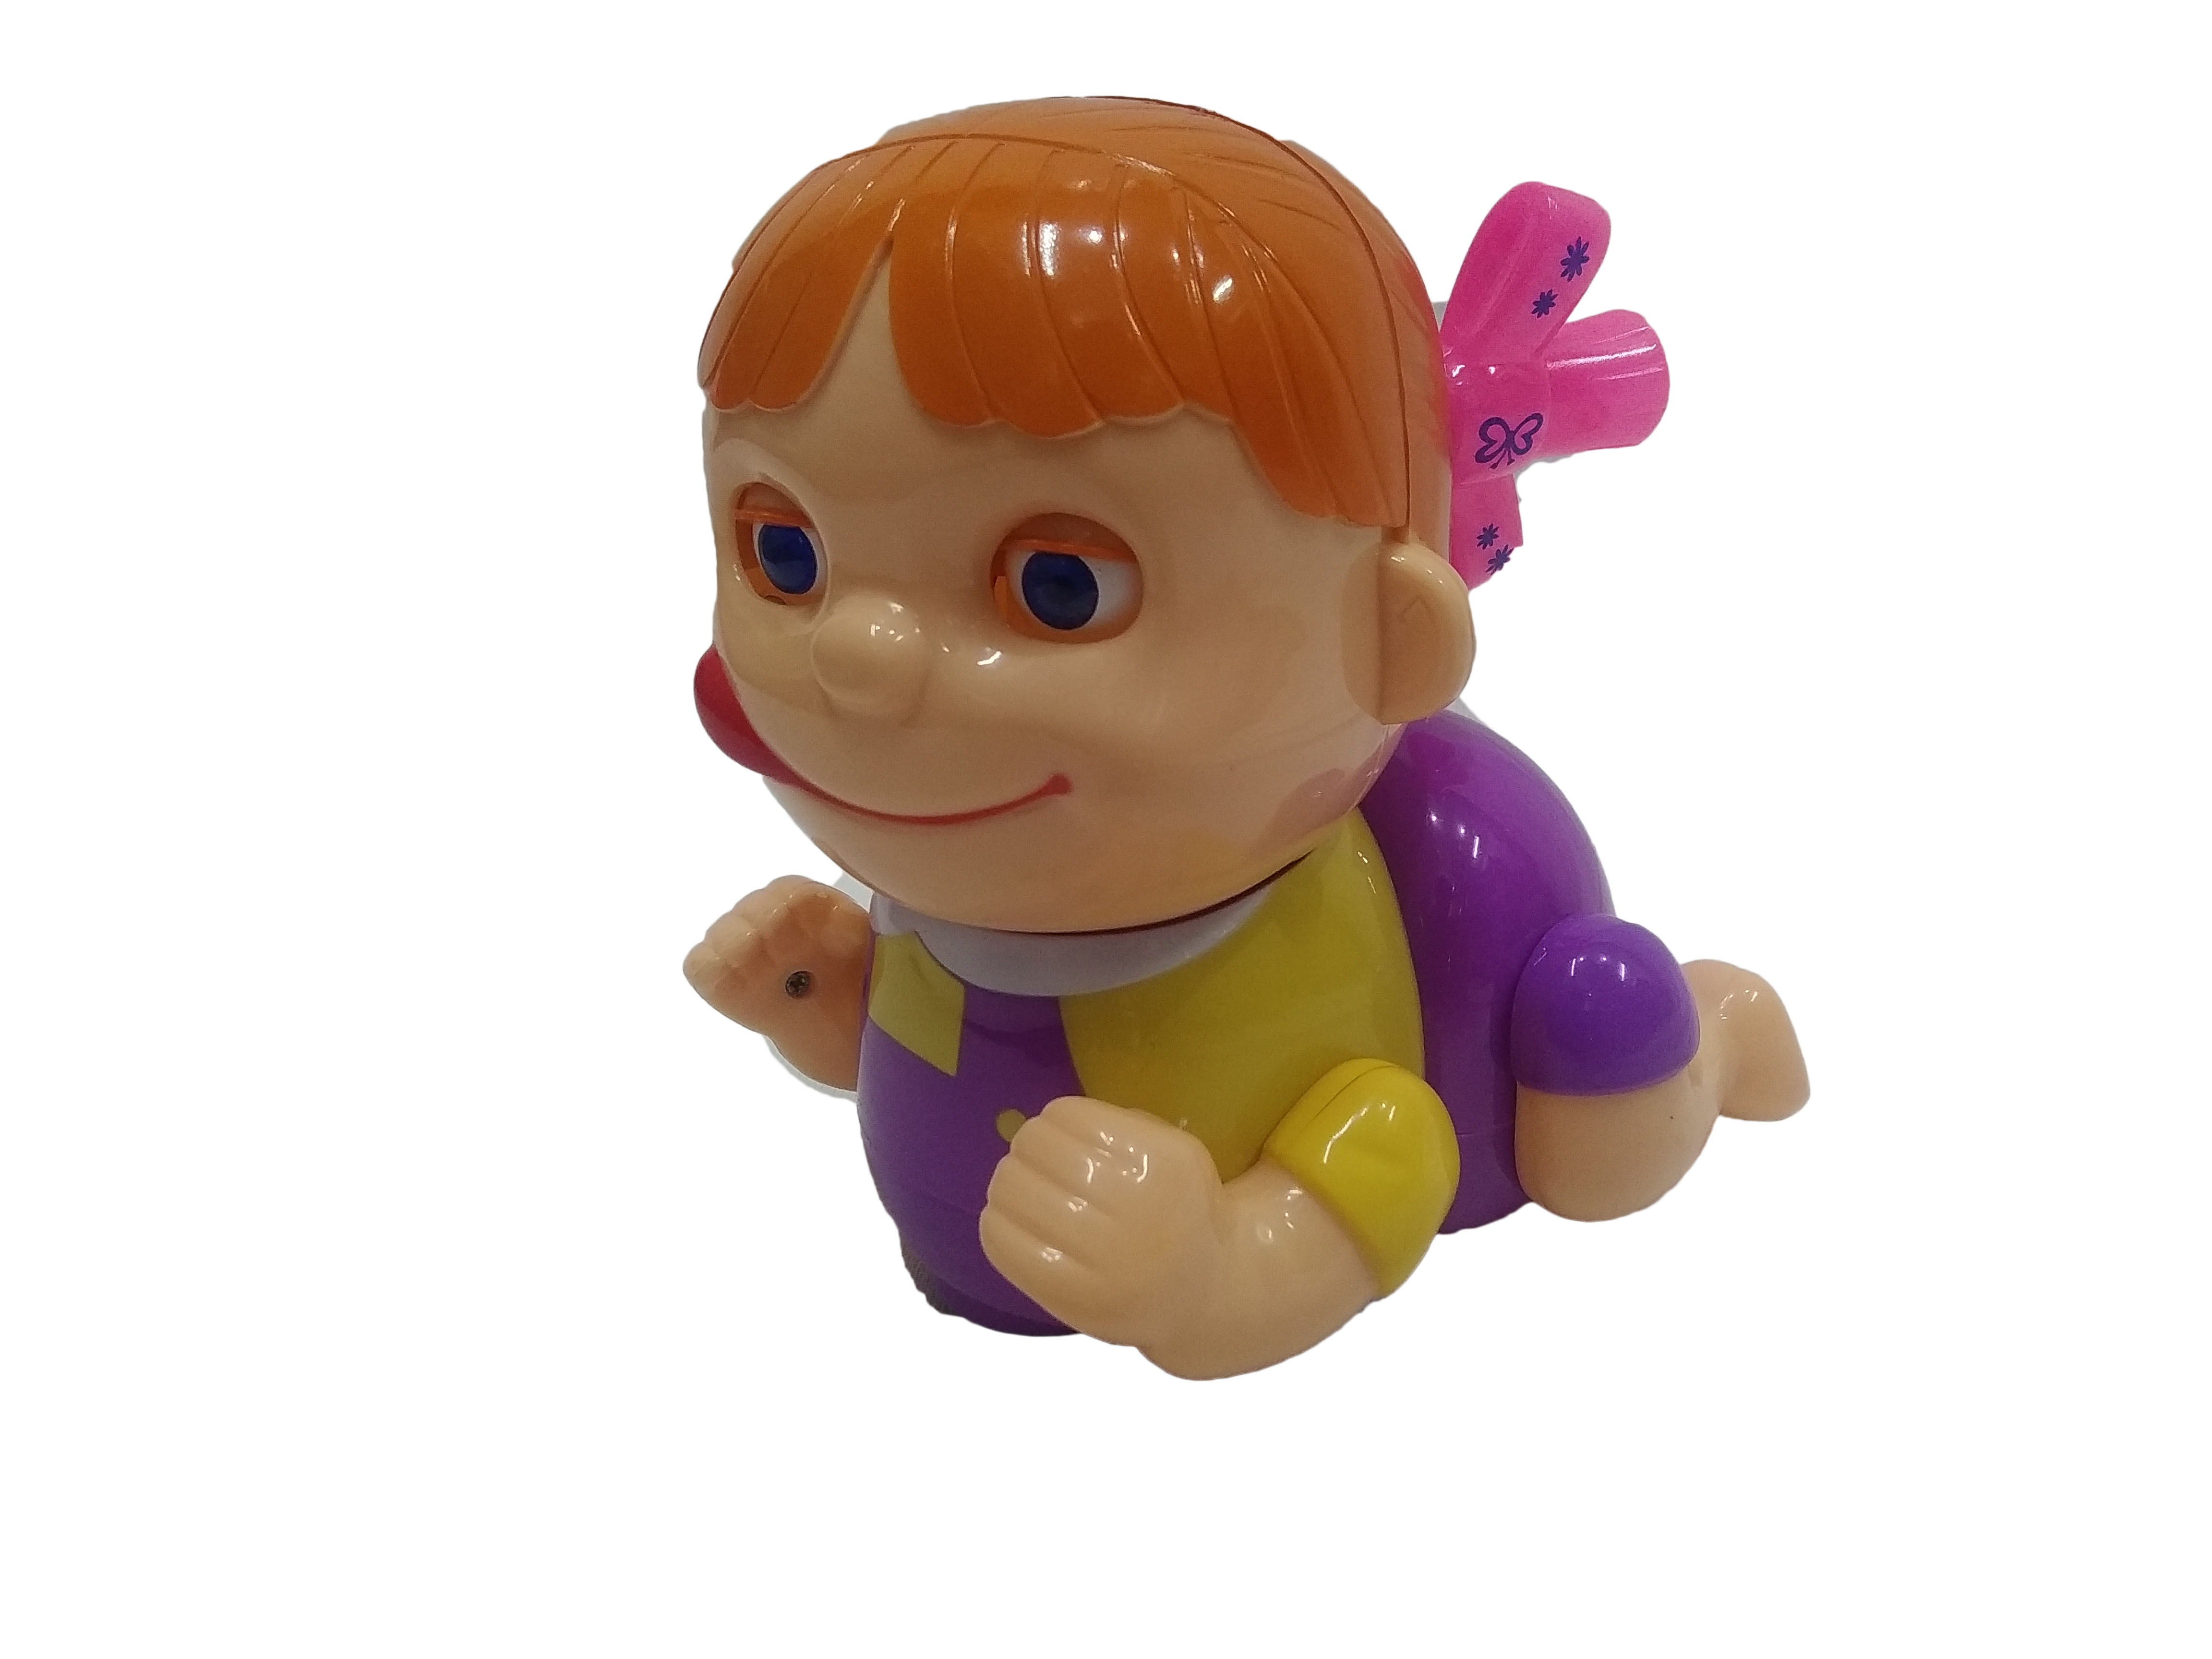 Naughty Baby Crawling Toy With Music And Lights Toyoos